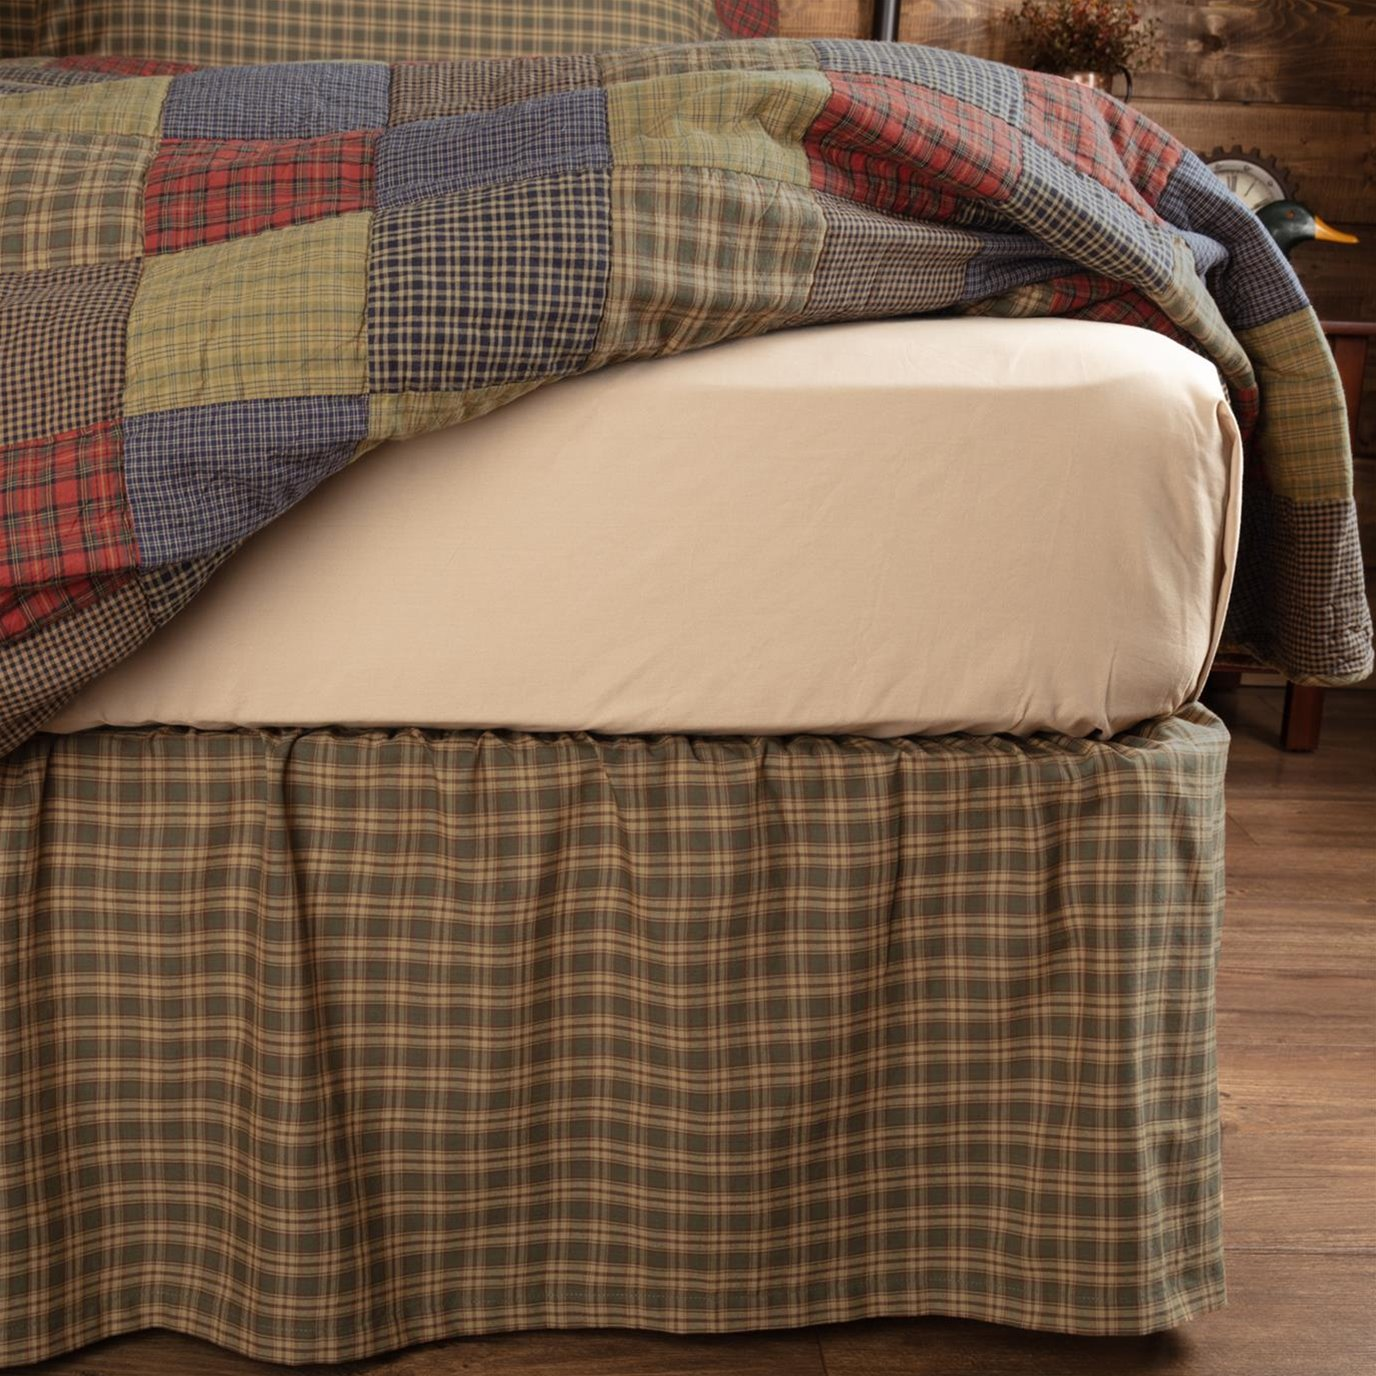 Cedar Ridge Queen Bed Skirt 60x80x16